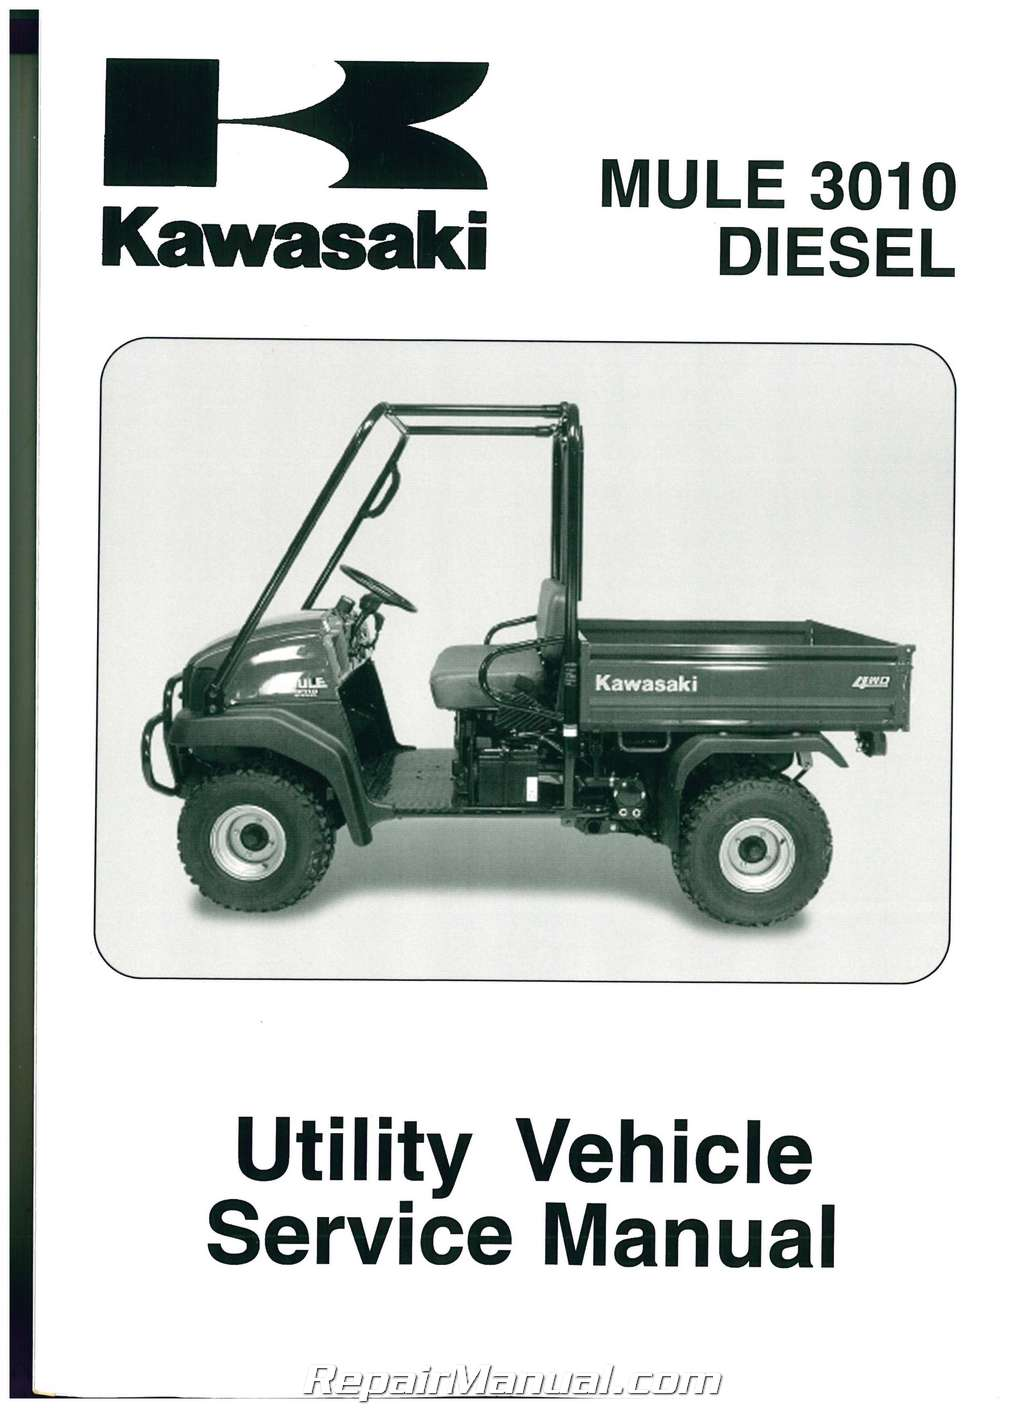 2006 Kawasaki Mule 3010 Repair Manual Basic Instruction Wiring Diagram For 2003 2007 Kaf950 Diesel Side By Service Rh Repairmanual Com Electrical Schematic